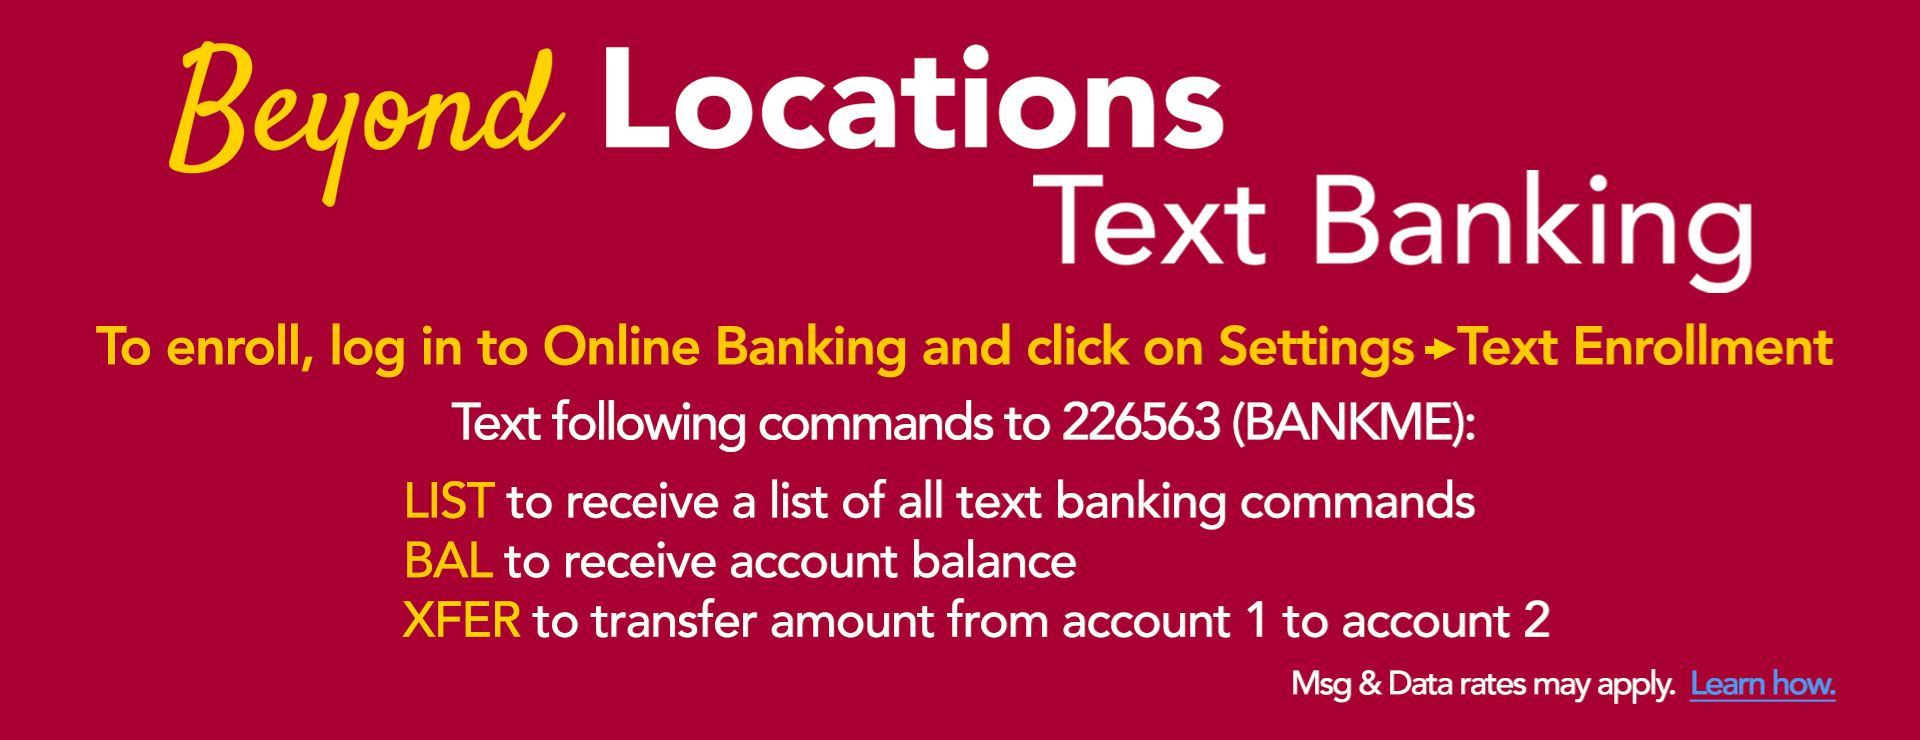 August 2020 - Text Banking